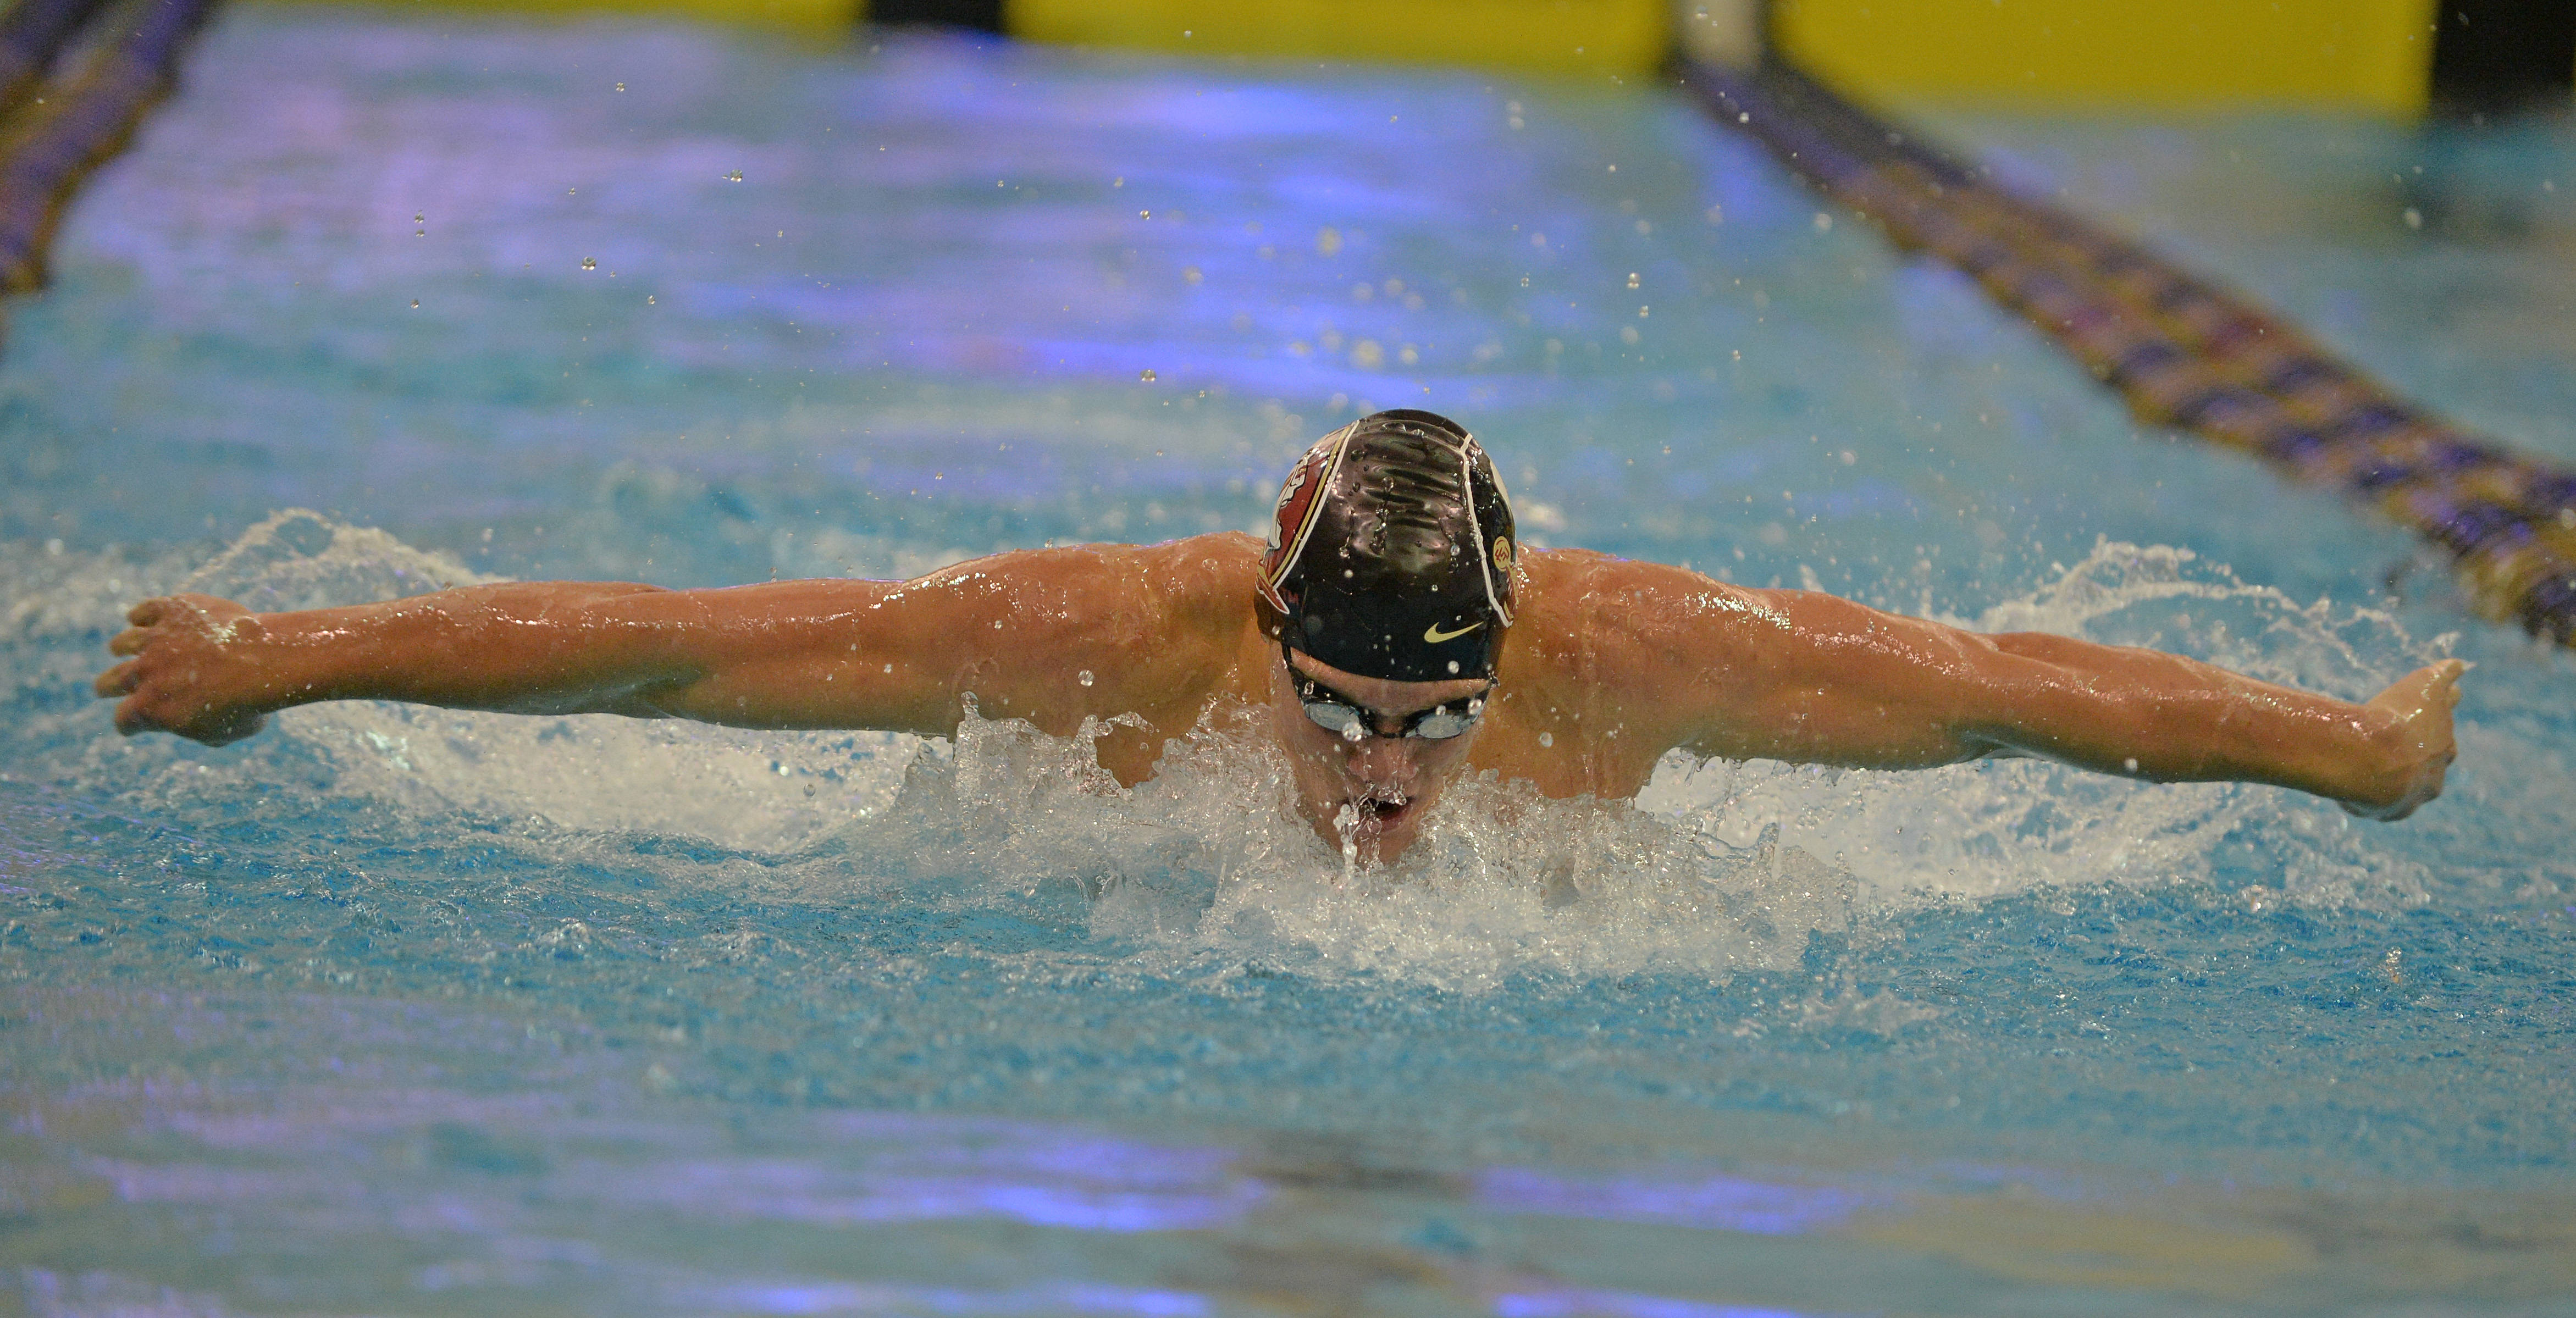 Connor Knight in the 200 fly - Mitch White